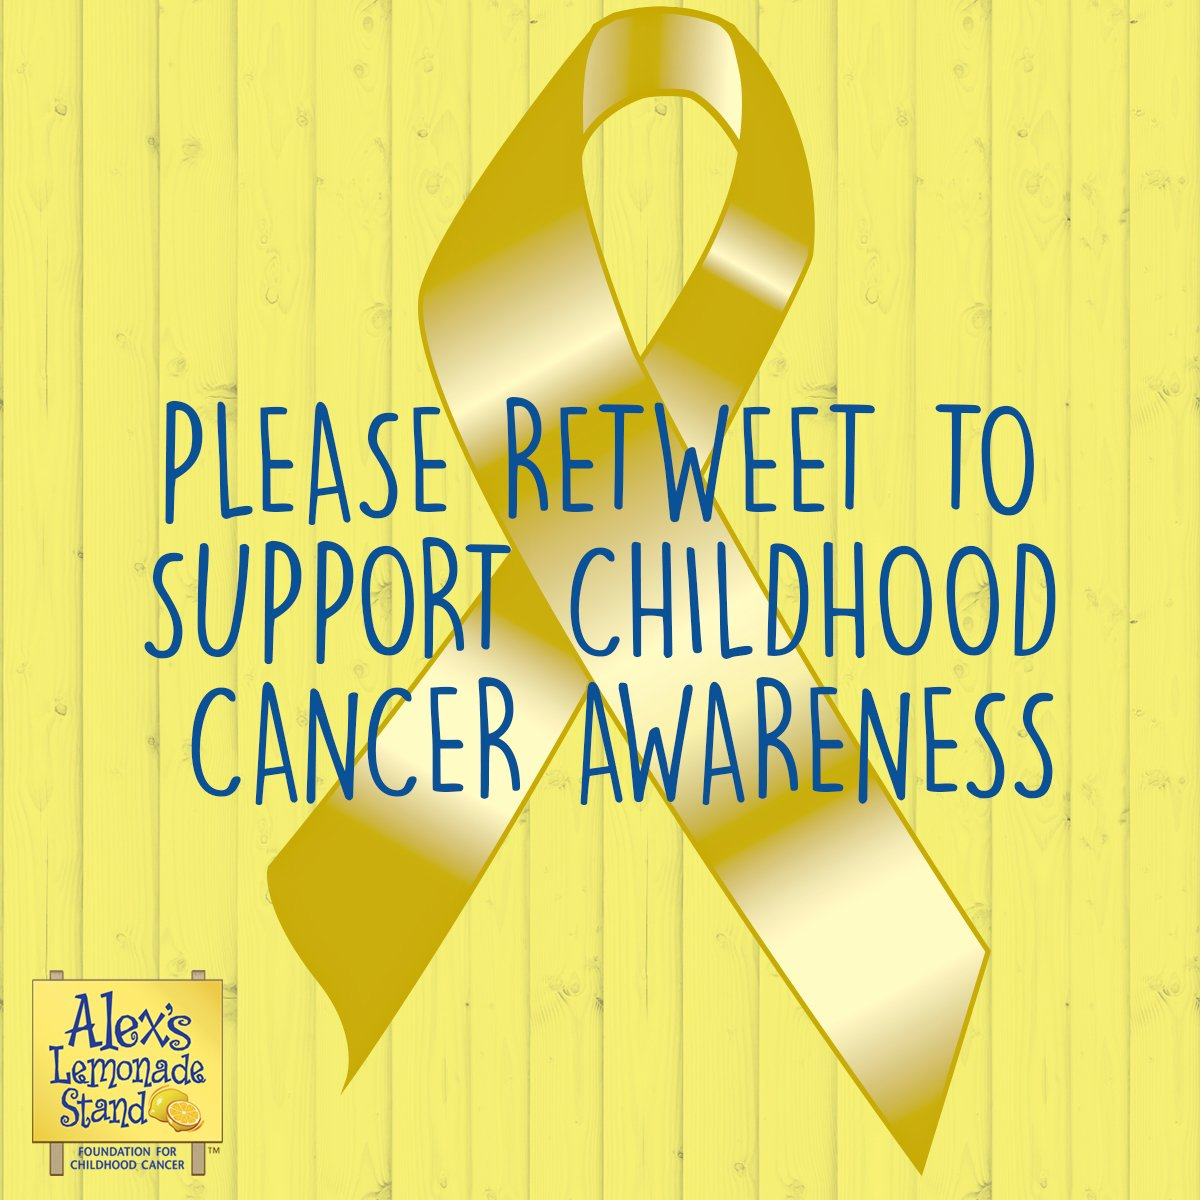 September is Childhood Cancer Awareness Month, please retweet in support of all kids fighting cancer.